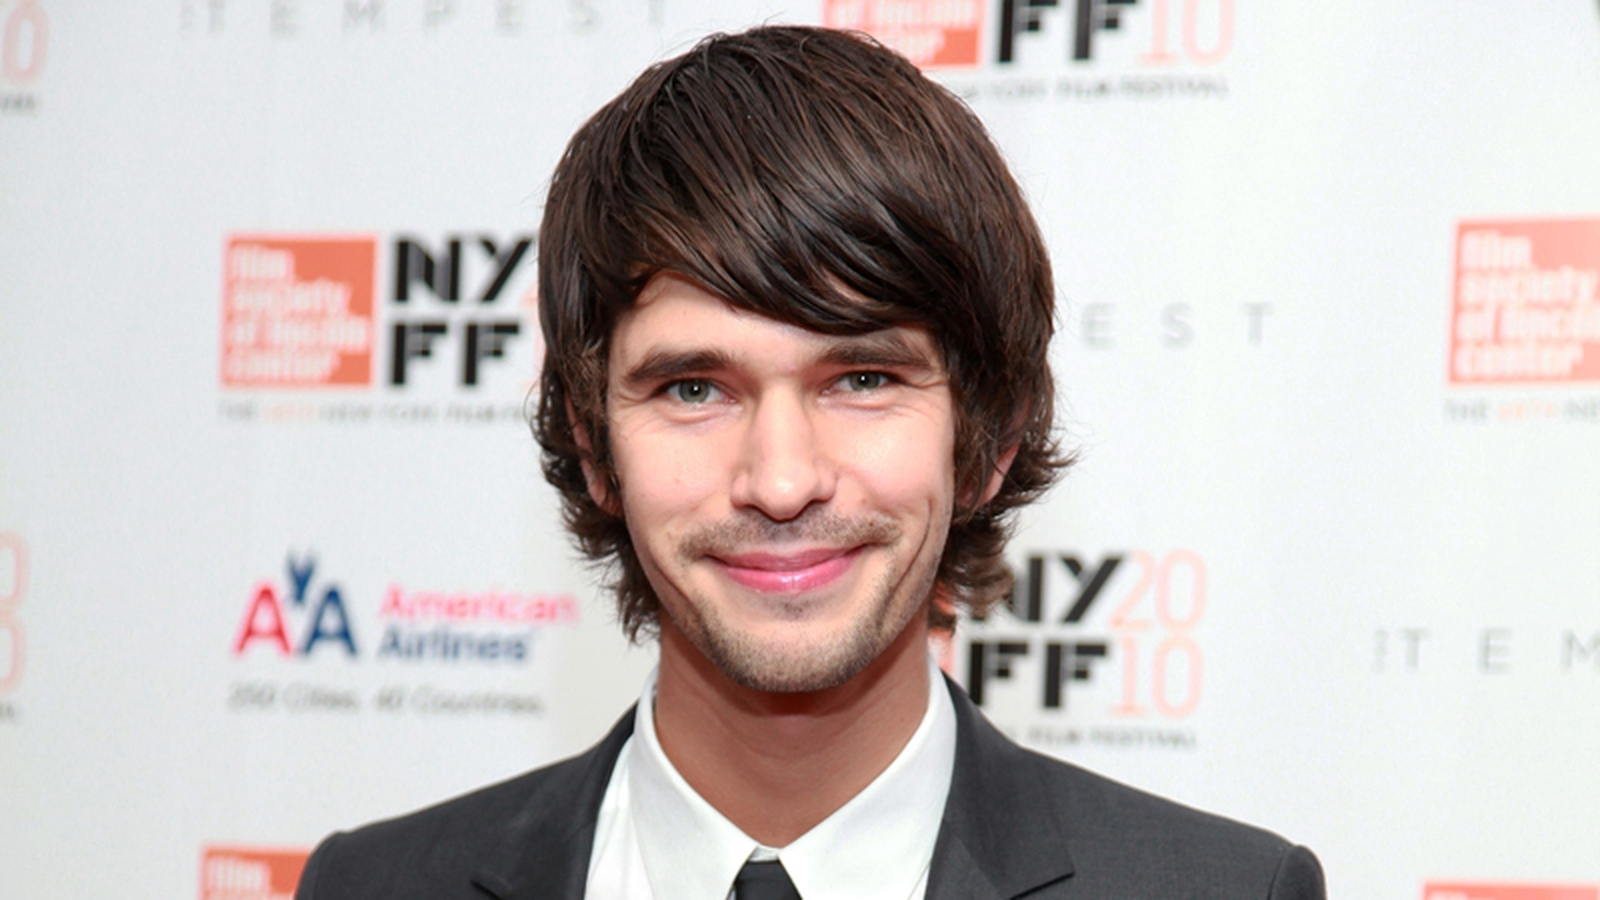 Ben Whishaw Cast As Q In Bond